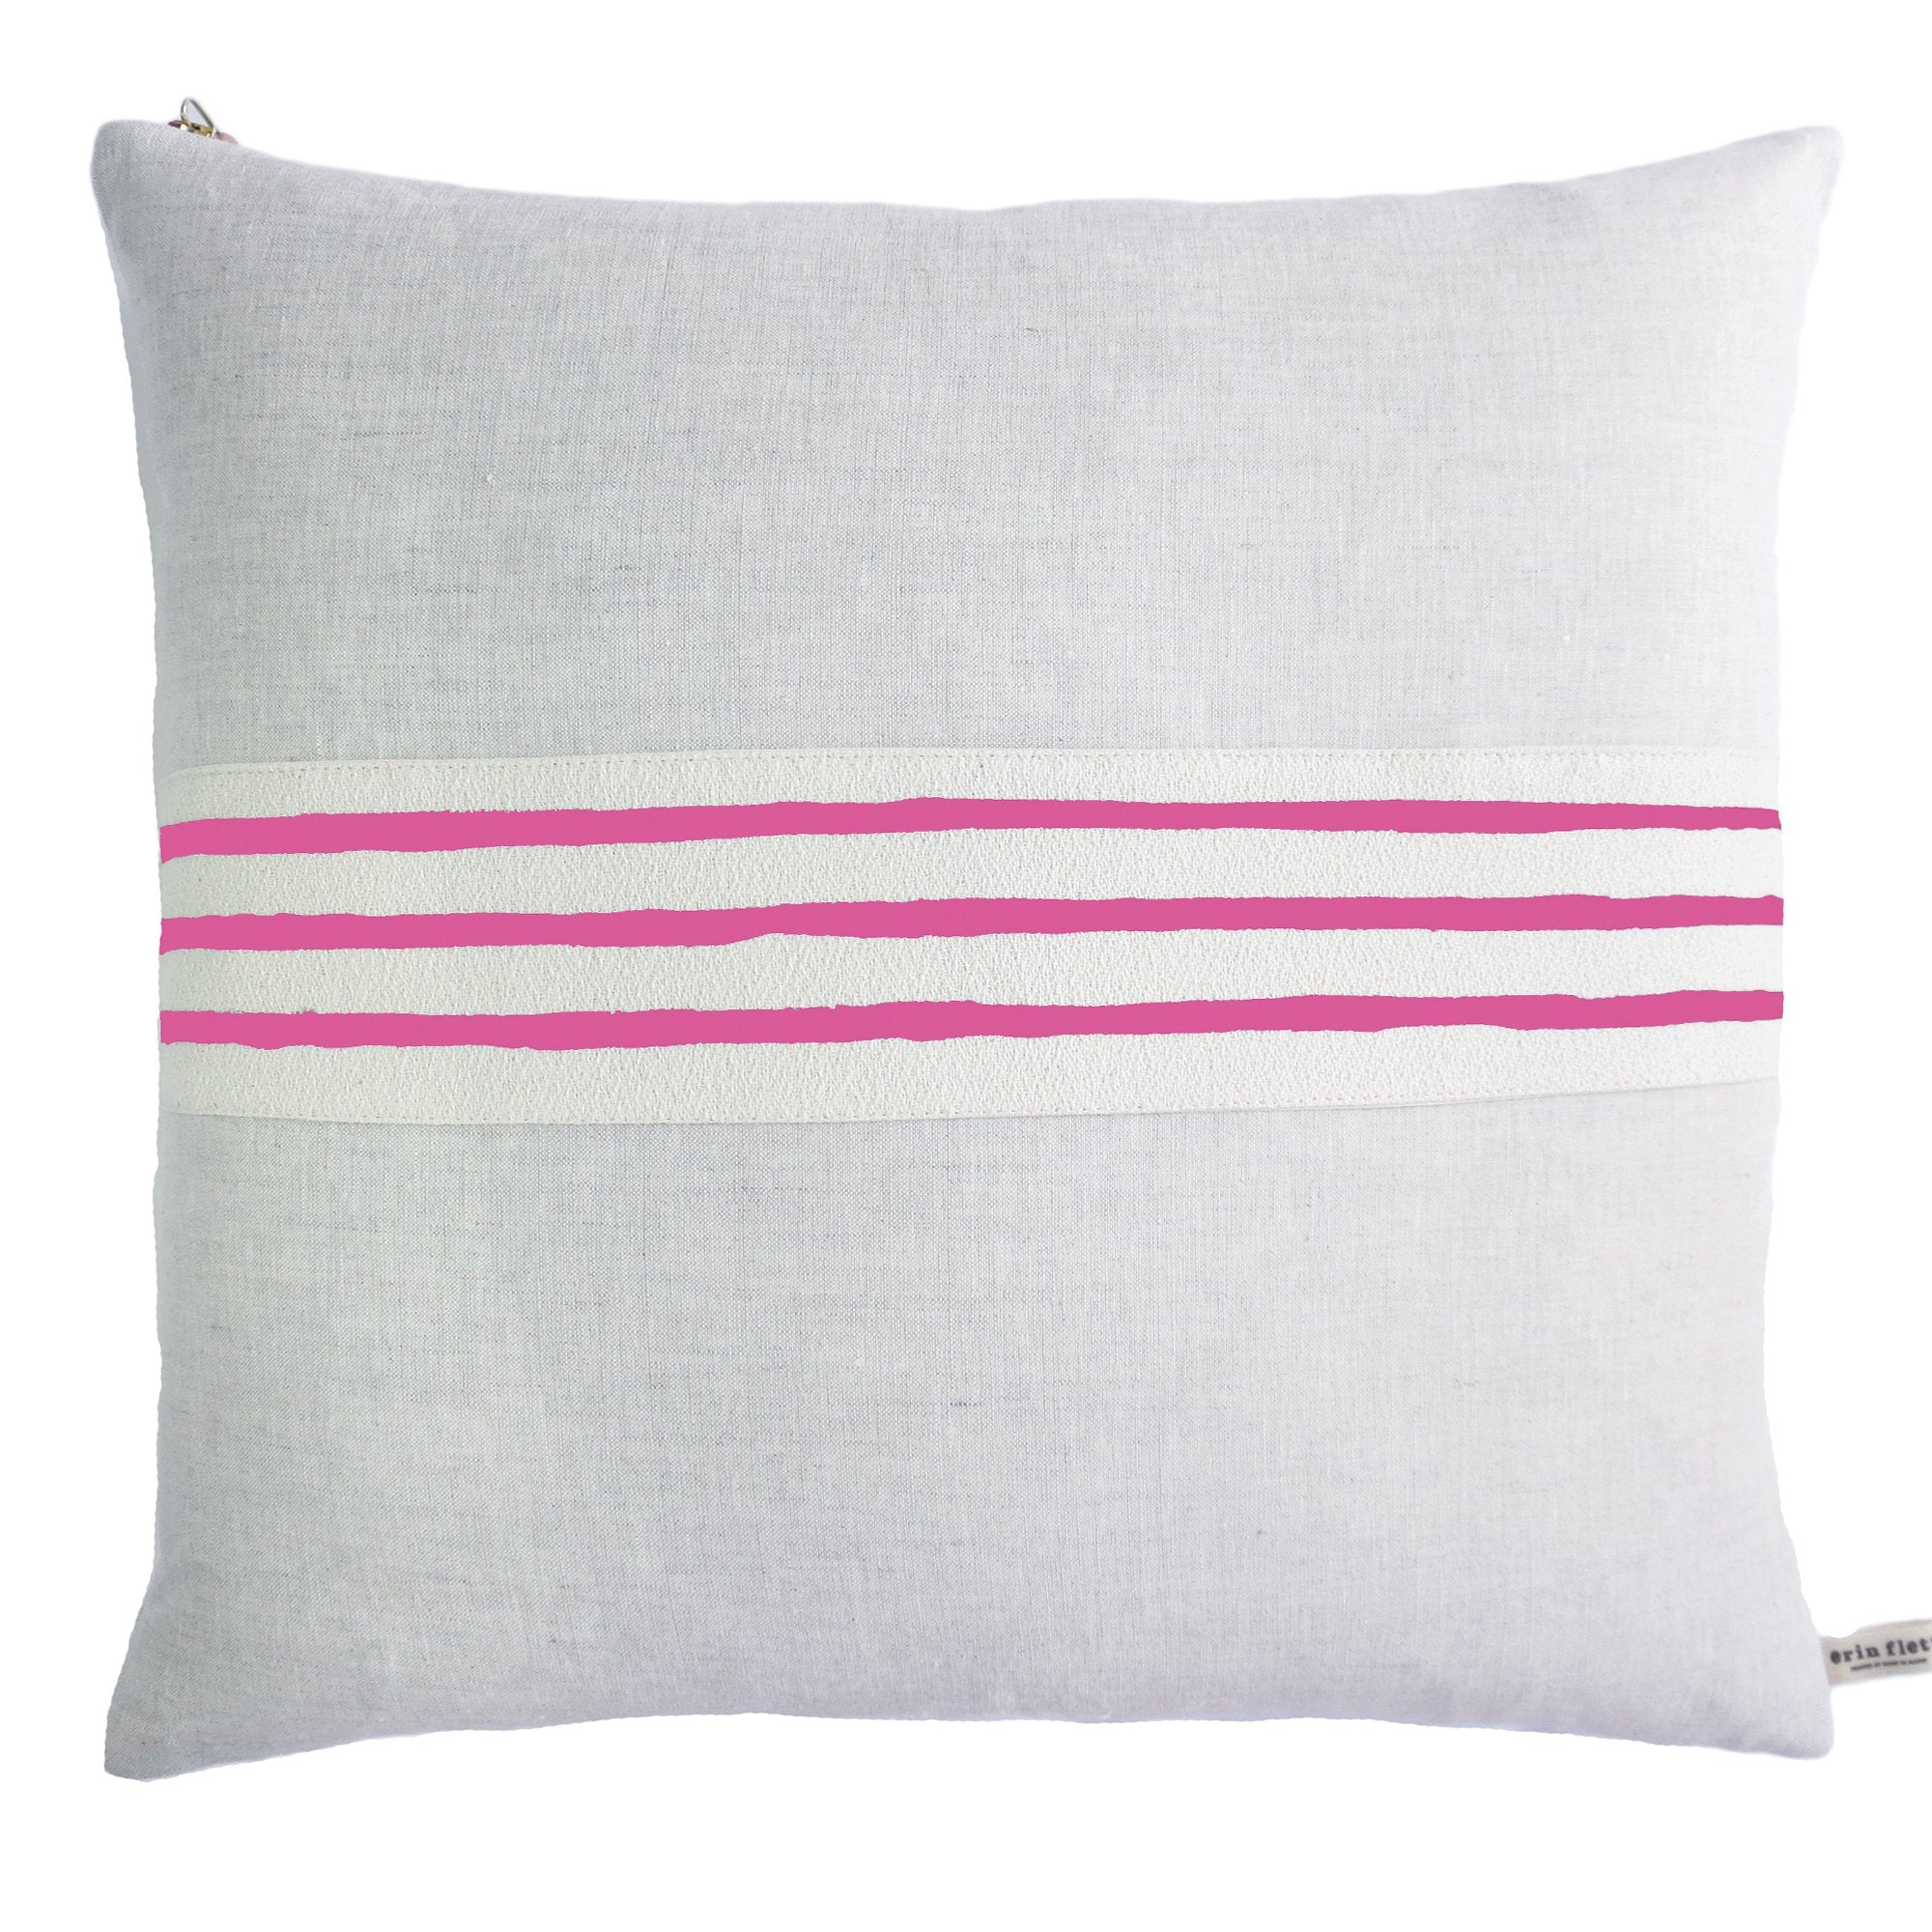 3 LINE HOT PINK BAND LINEN PILLOW COVER